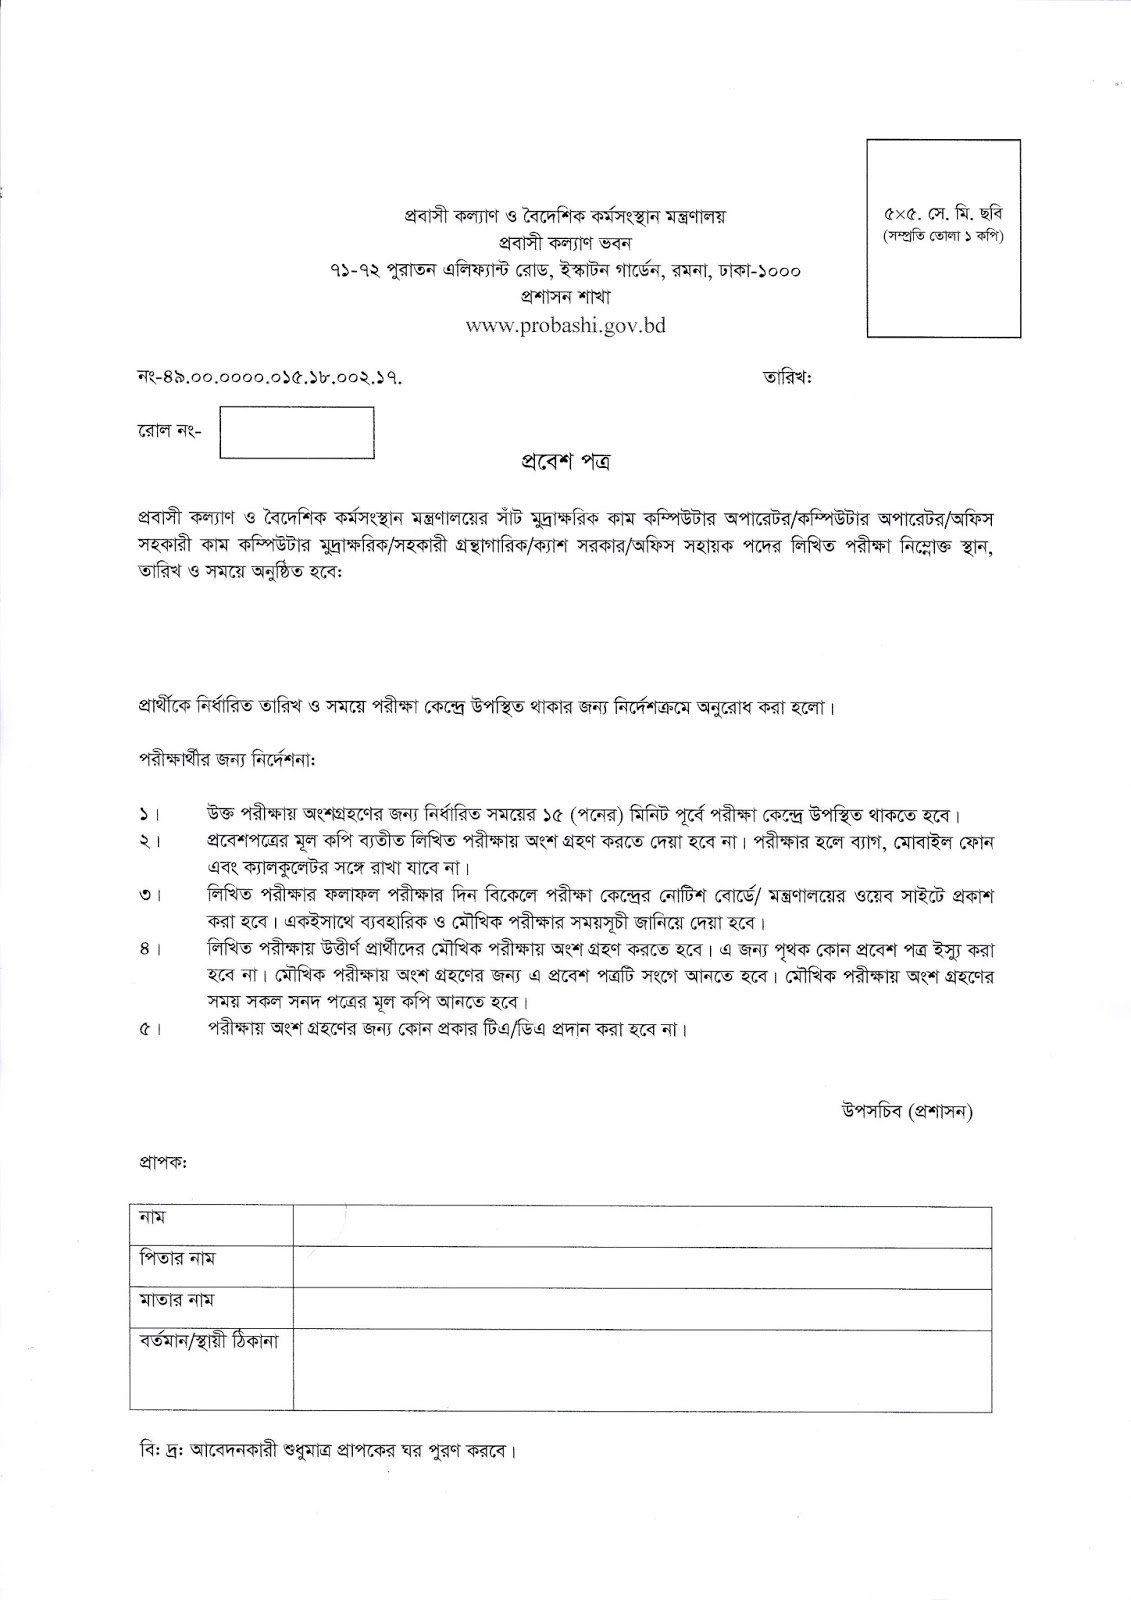 Ministry of Expatriates' Welfare and Overseas Employment Recruitment Application and Admit Card Form